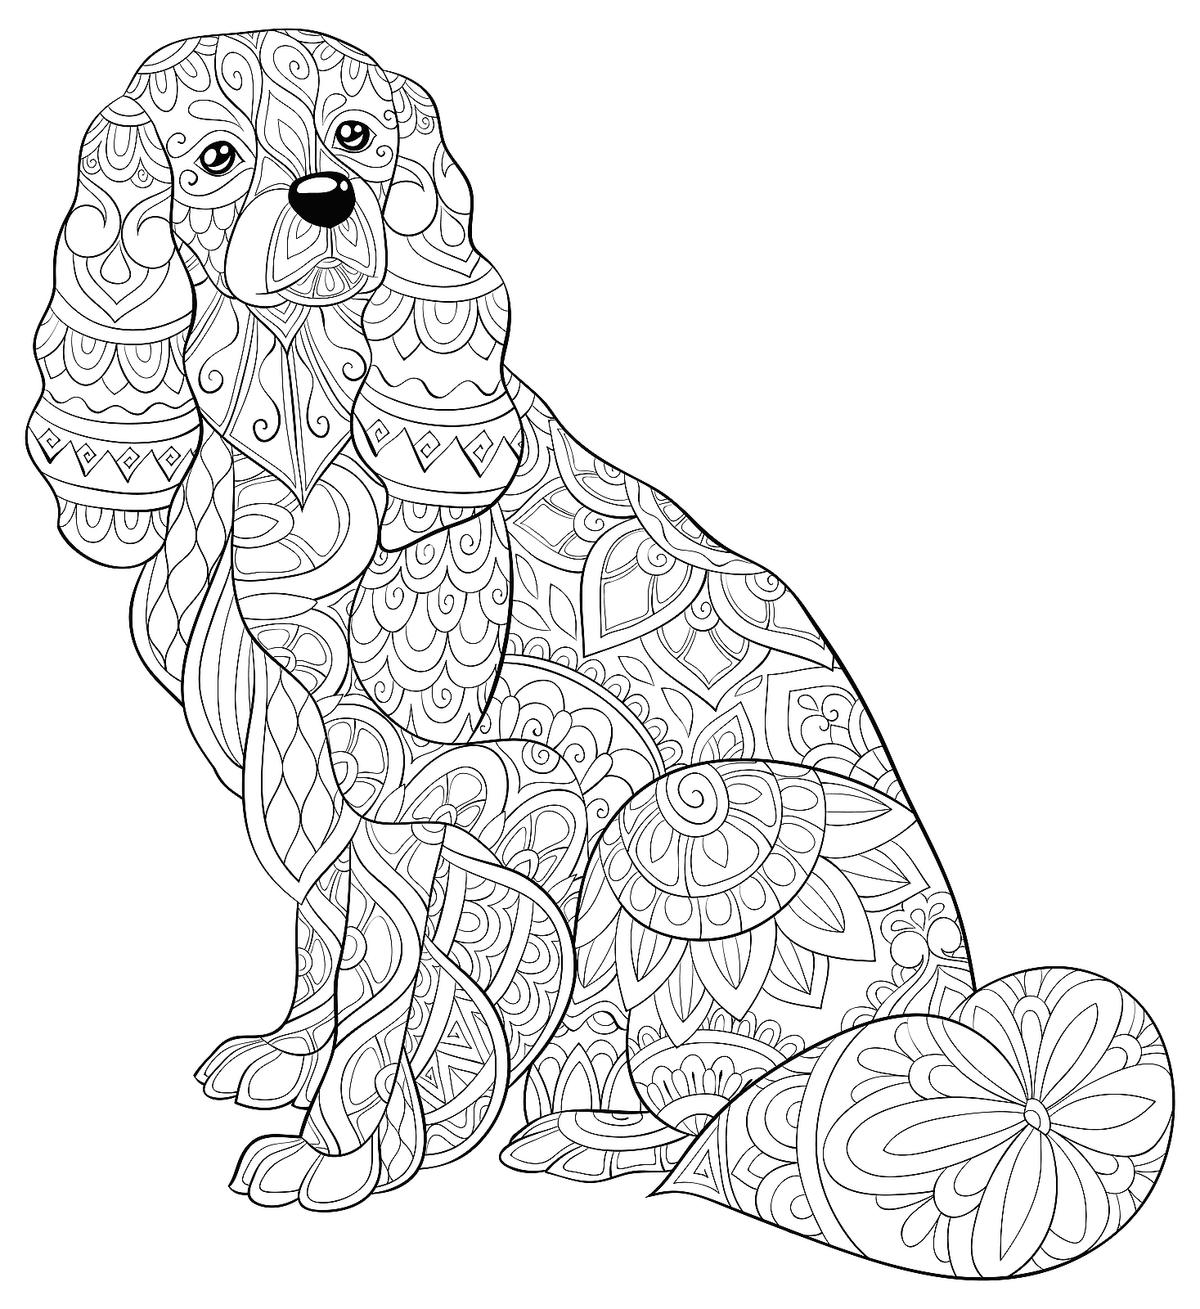 dogs coloring pictures cute dog animal coloring pages books for print pictures dogs coloring